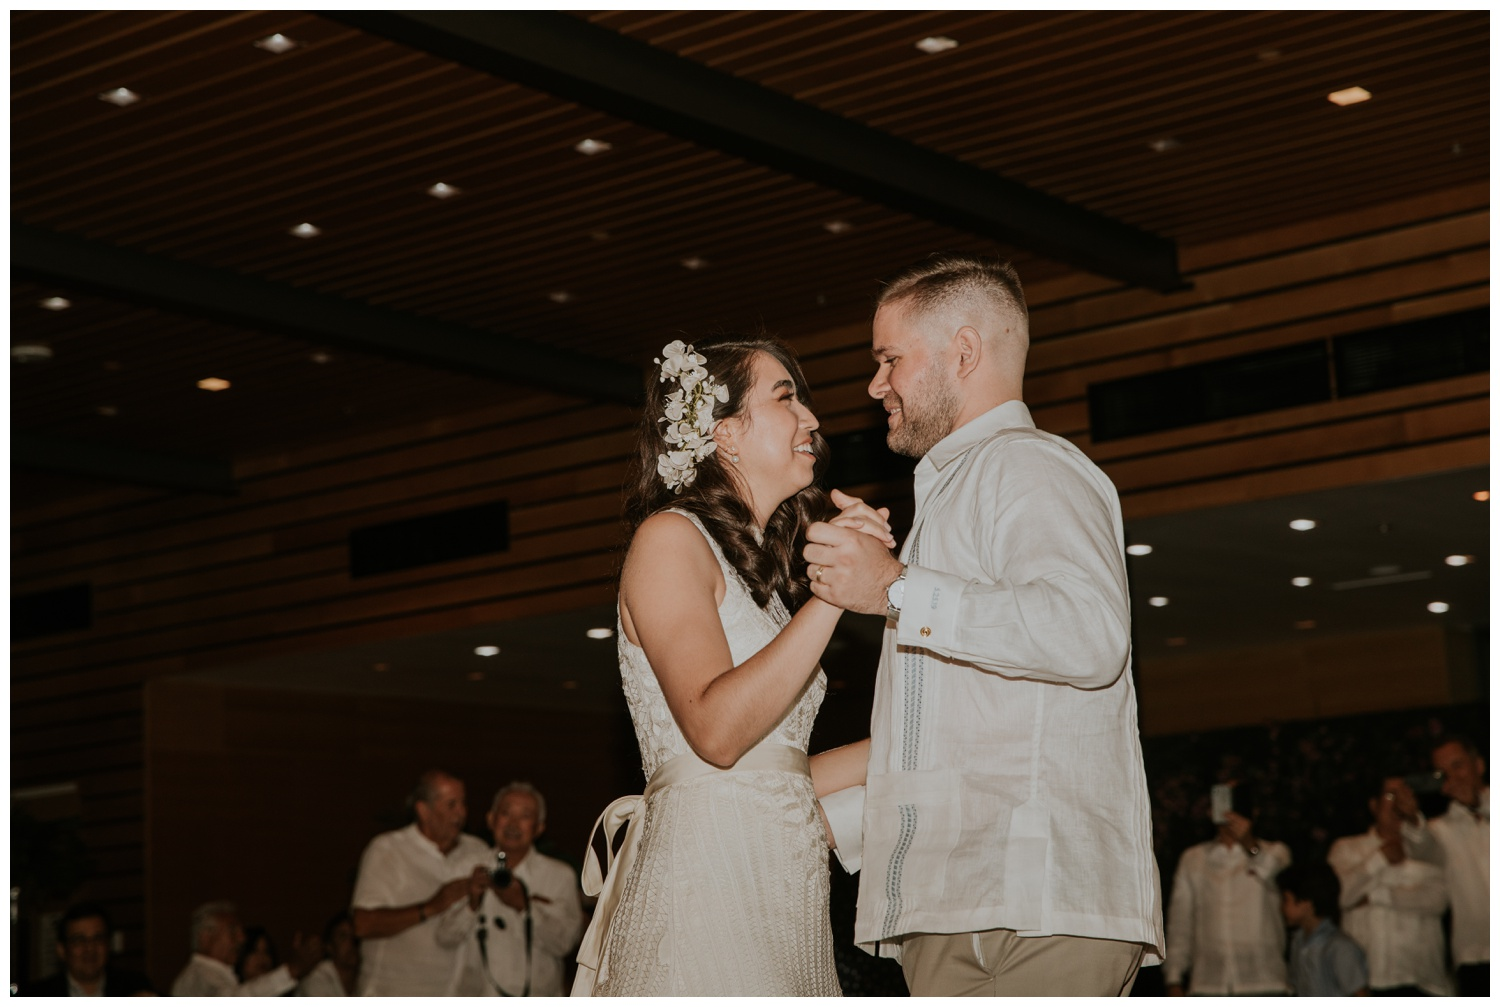 Ana + Sean || Jack Guenther Pavilion at the Briscoe Wedding San Antonio, Texas (Joshua and Parisa – Contista Productions)_0095.jpg